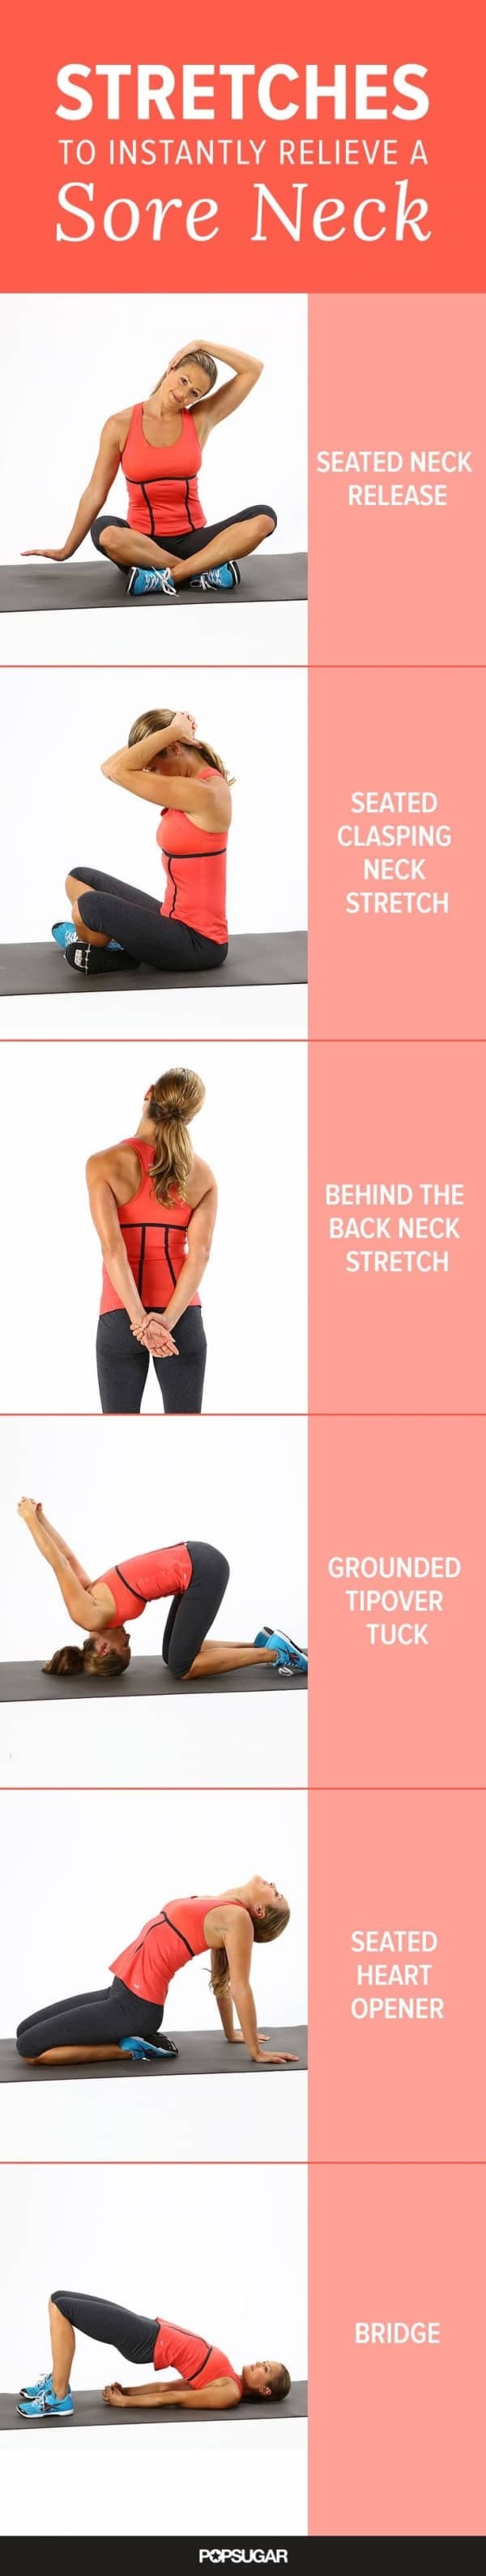 8 stretches for a sore neck